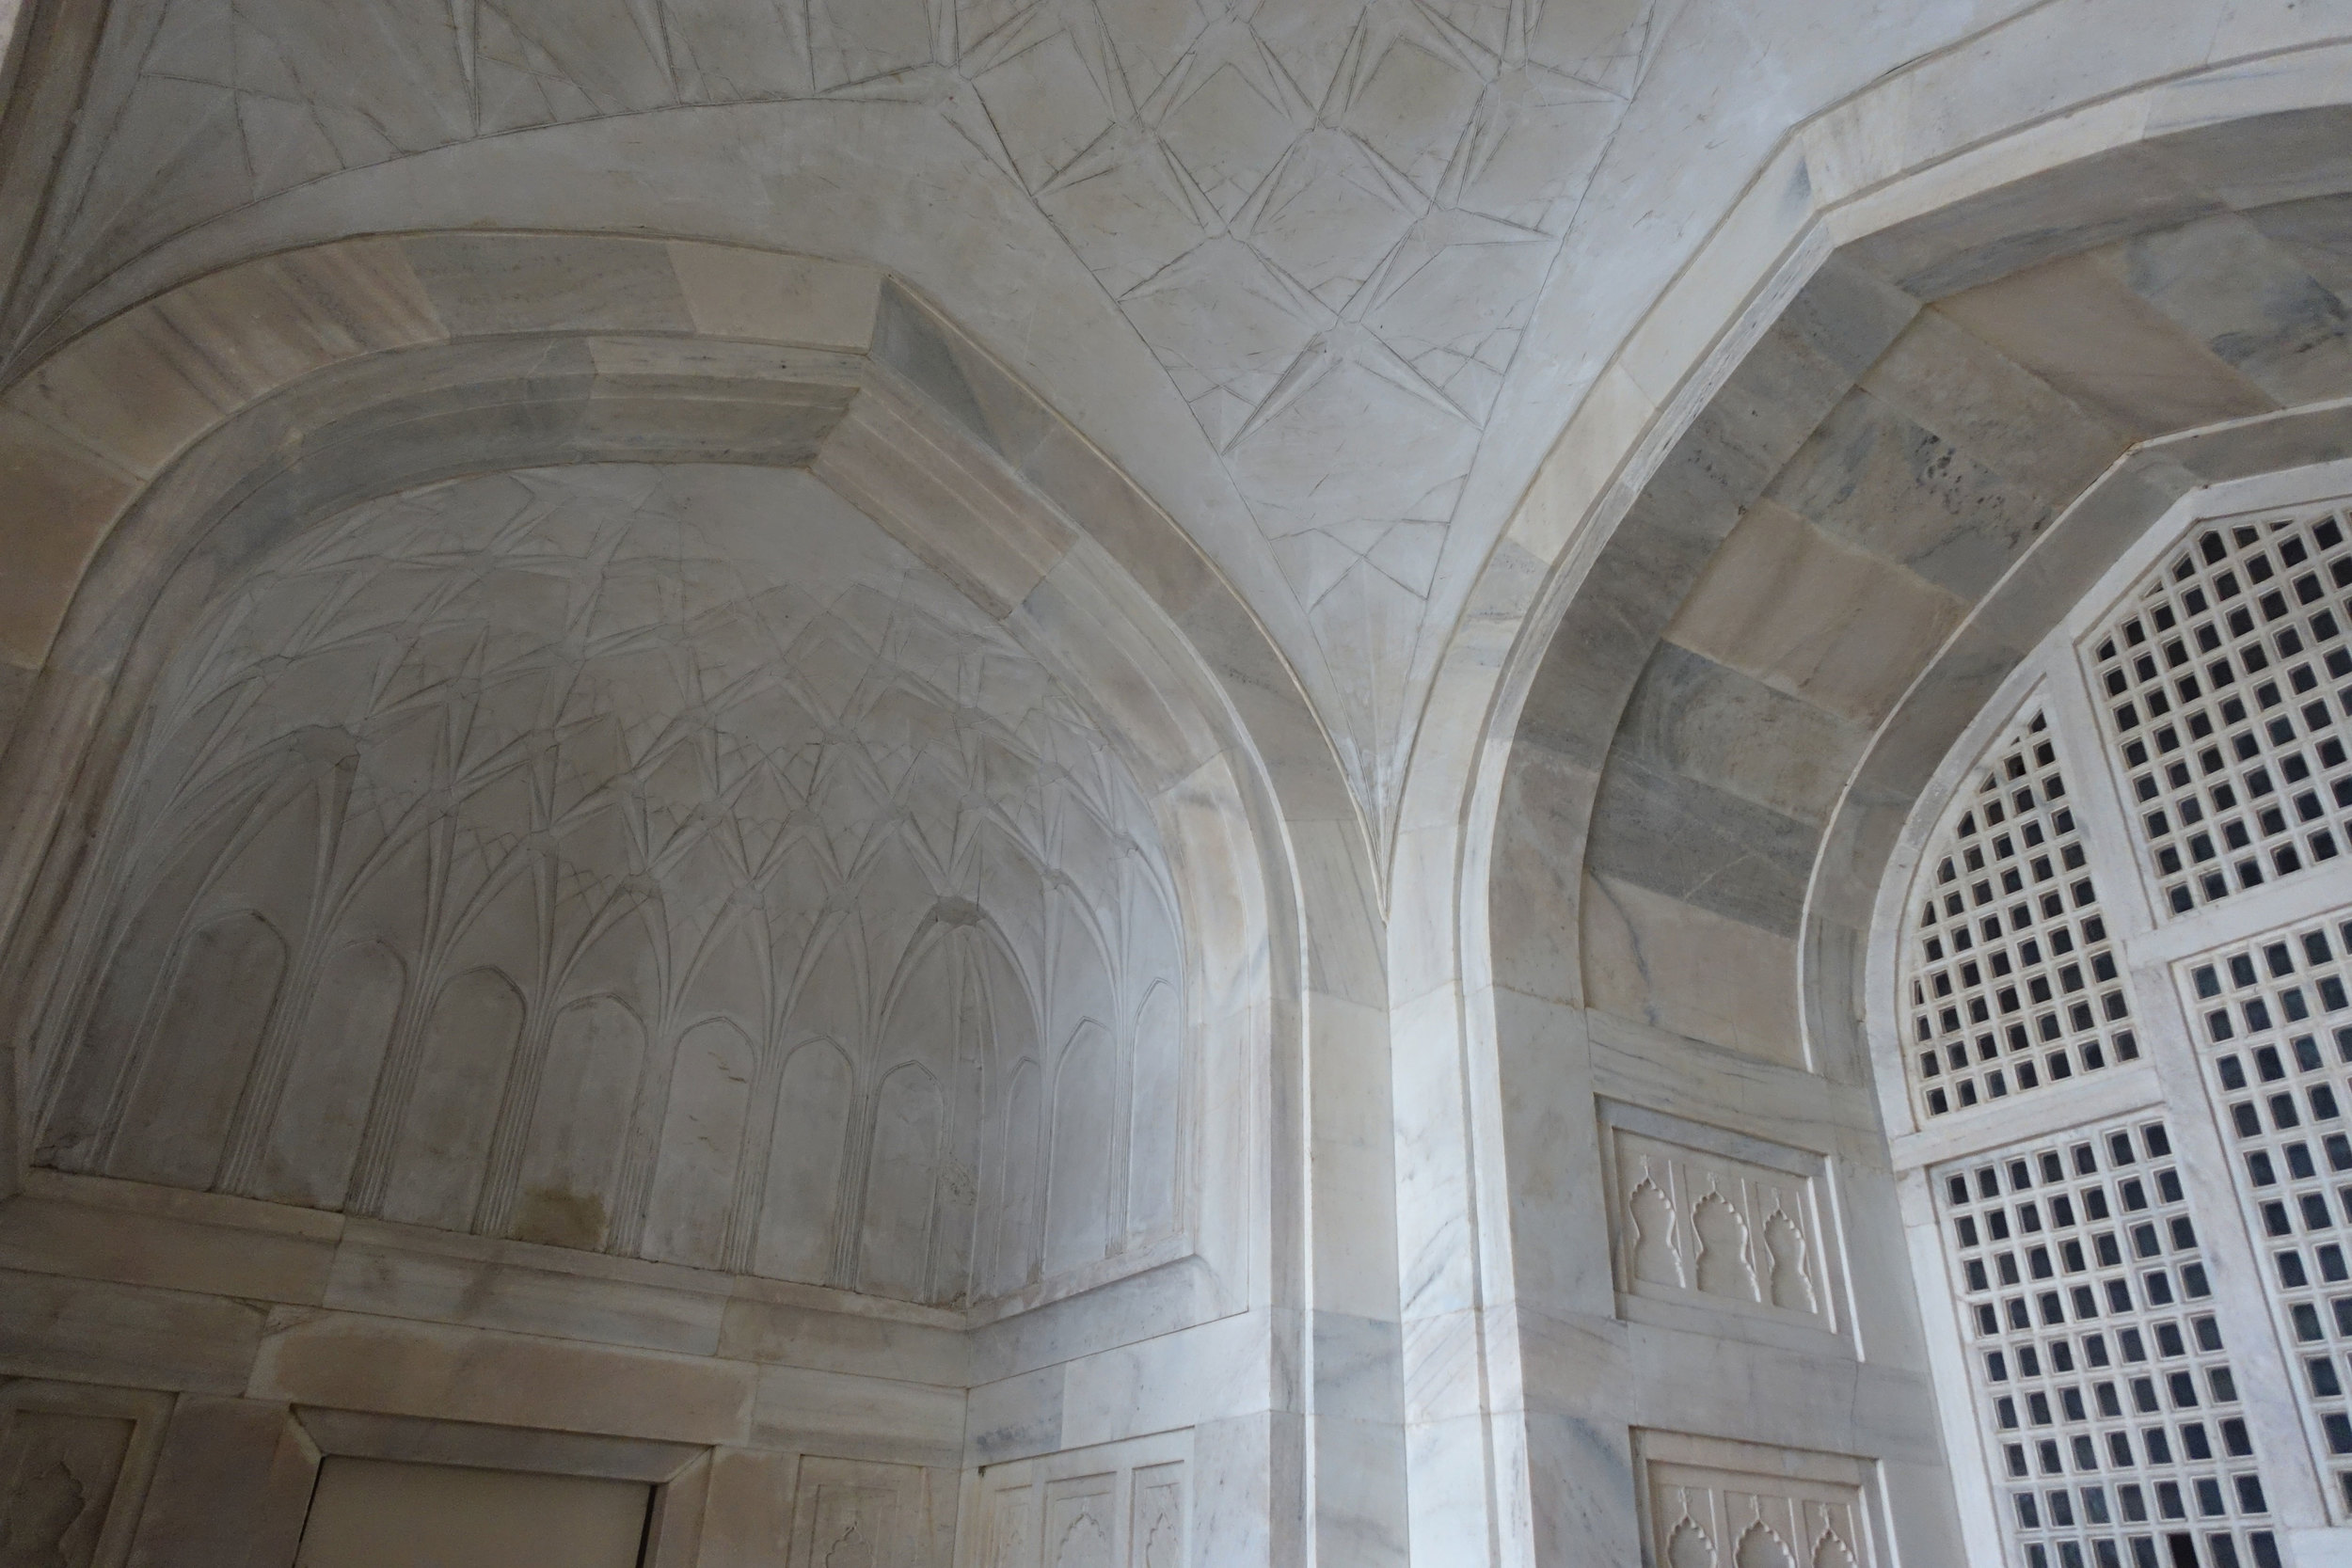 detail of the archways inside